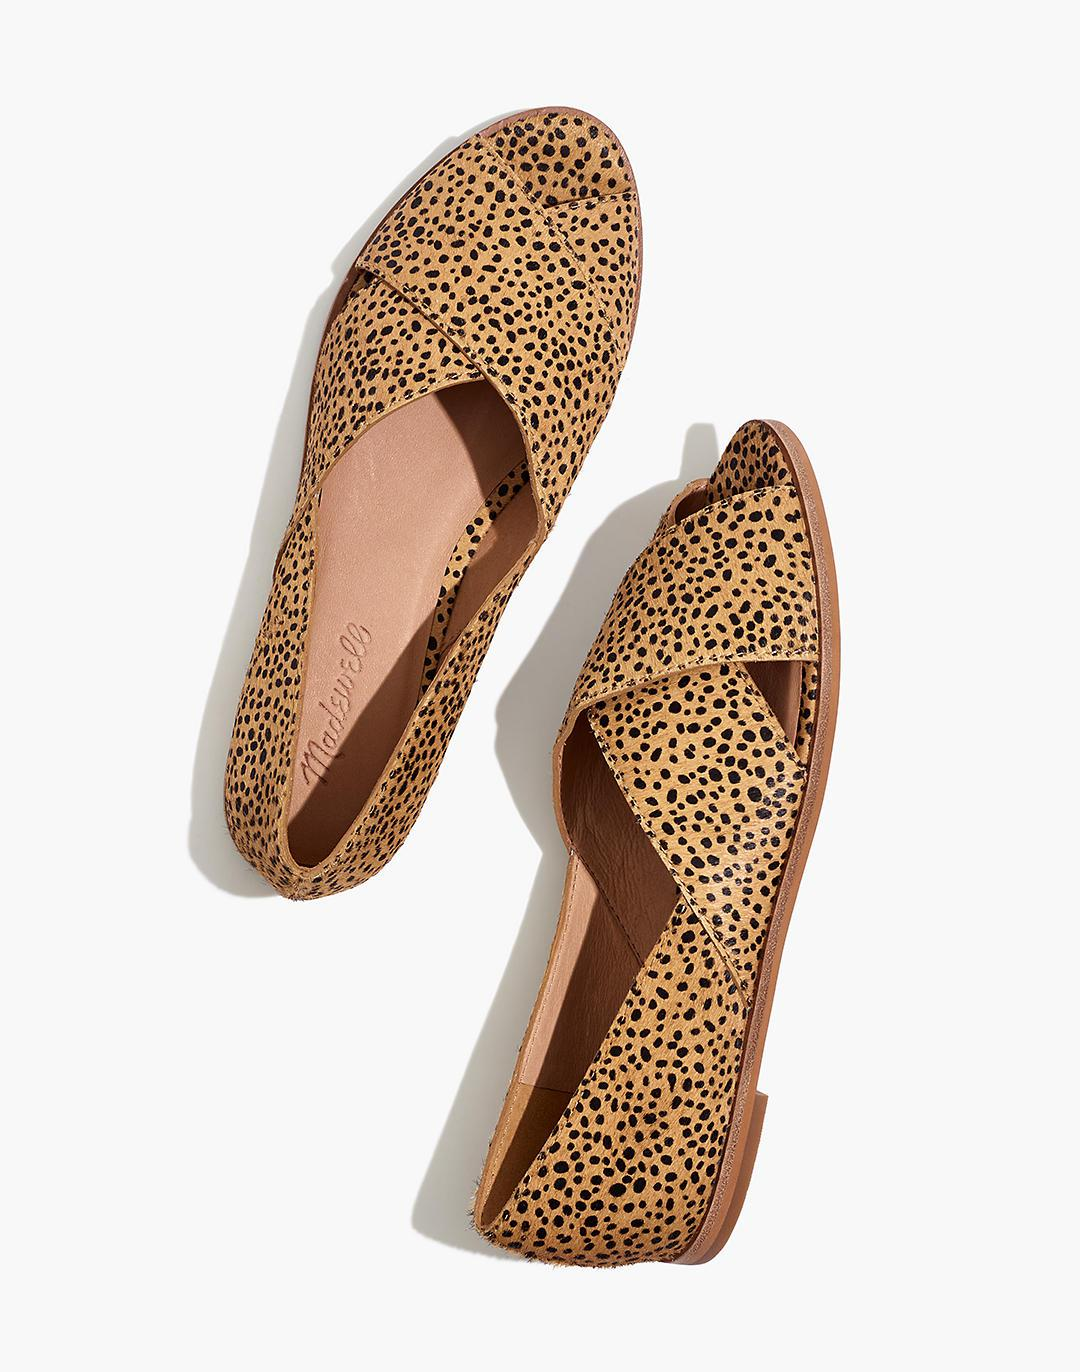 The Blaine Crisscross Flat in Spotted Calf Hair